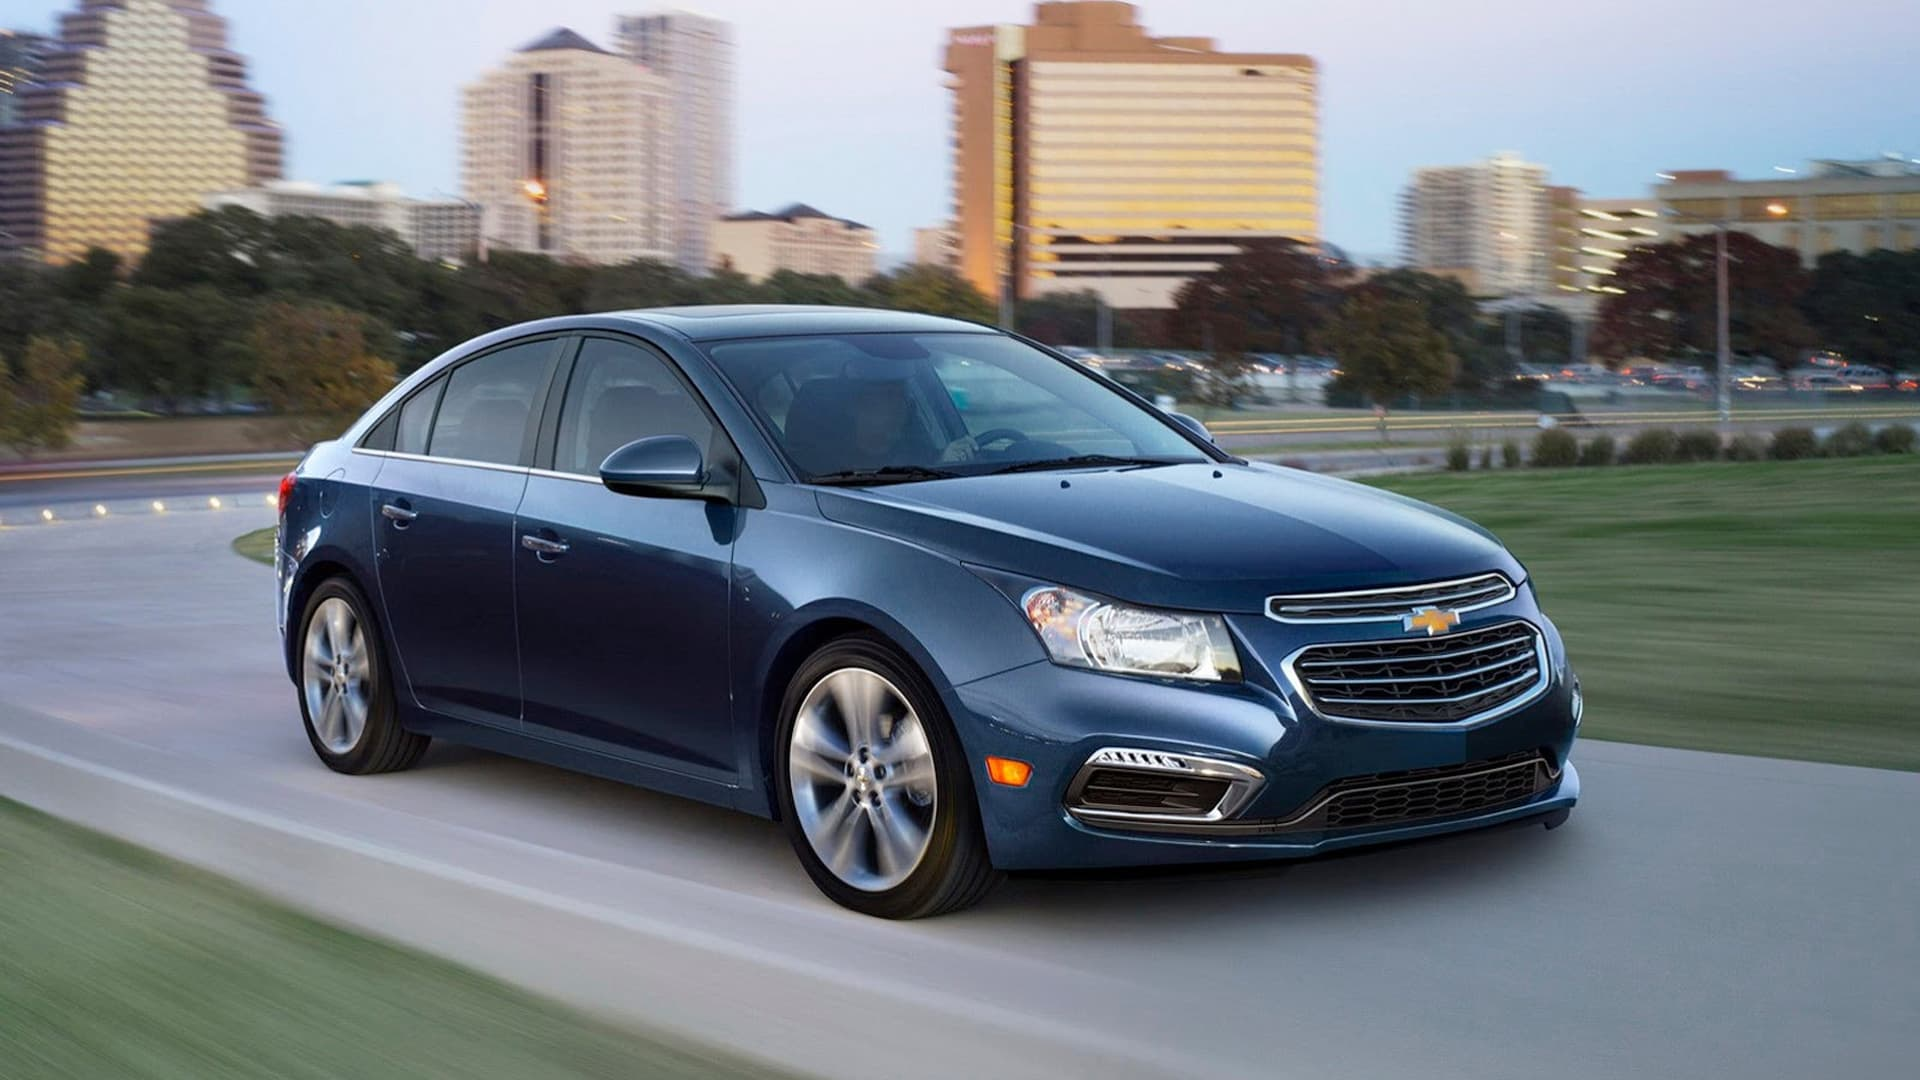 30+ Chevrolet Cruze wallpapers HD High Quality free Download